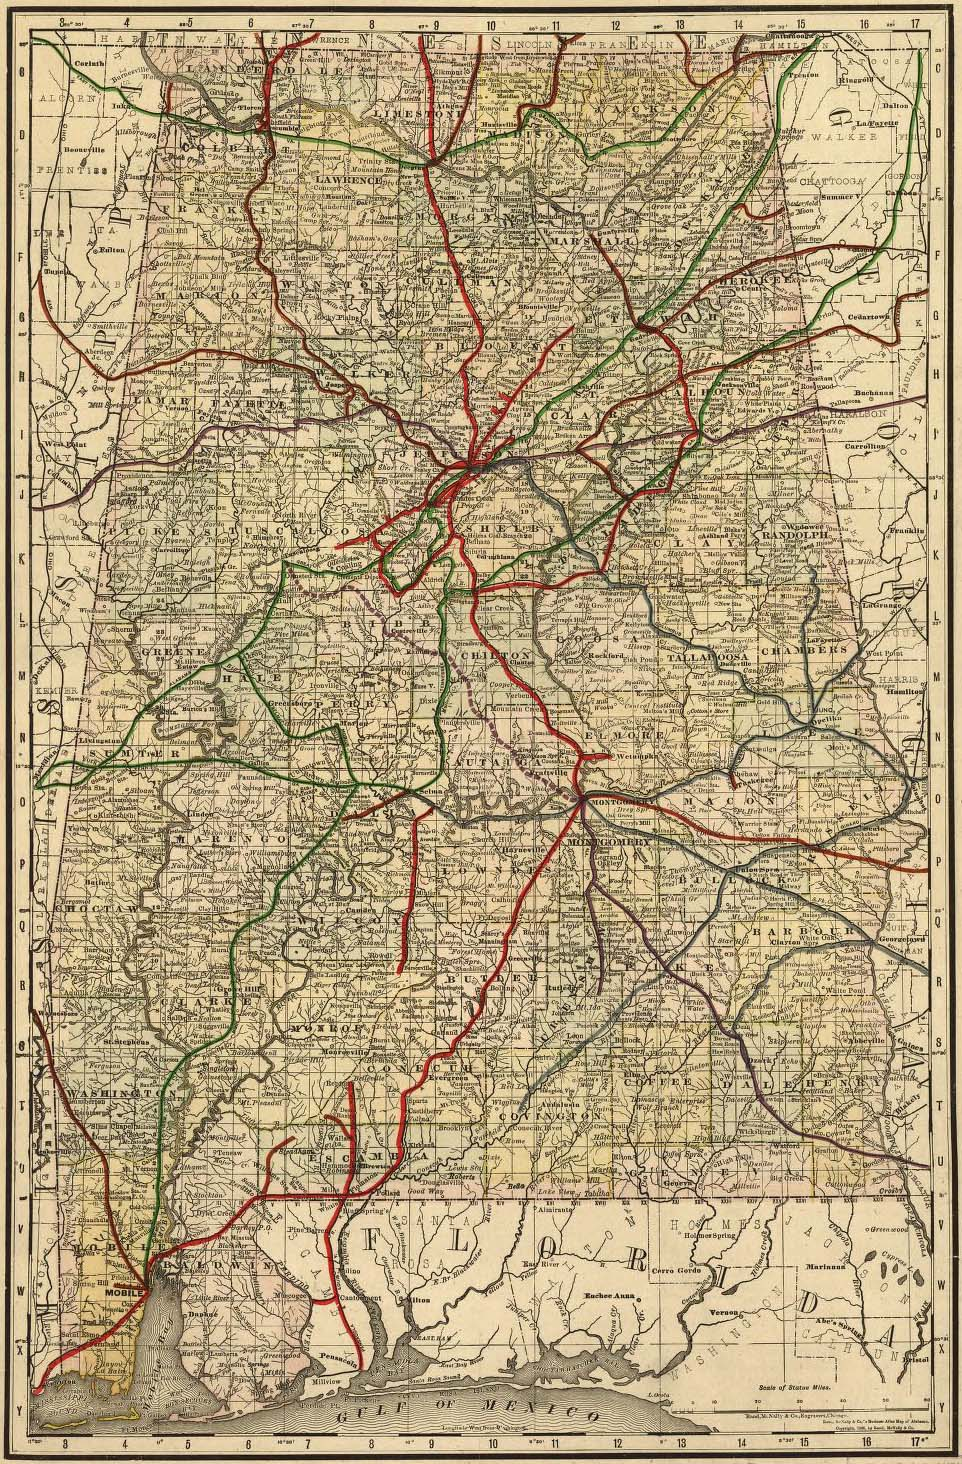 Political map of roads, counties, cities, and rivers of Alabama